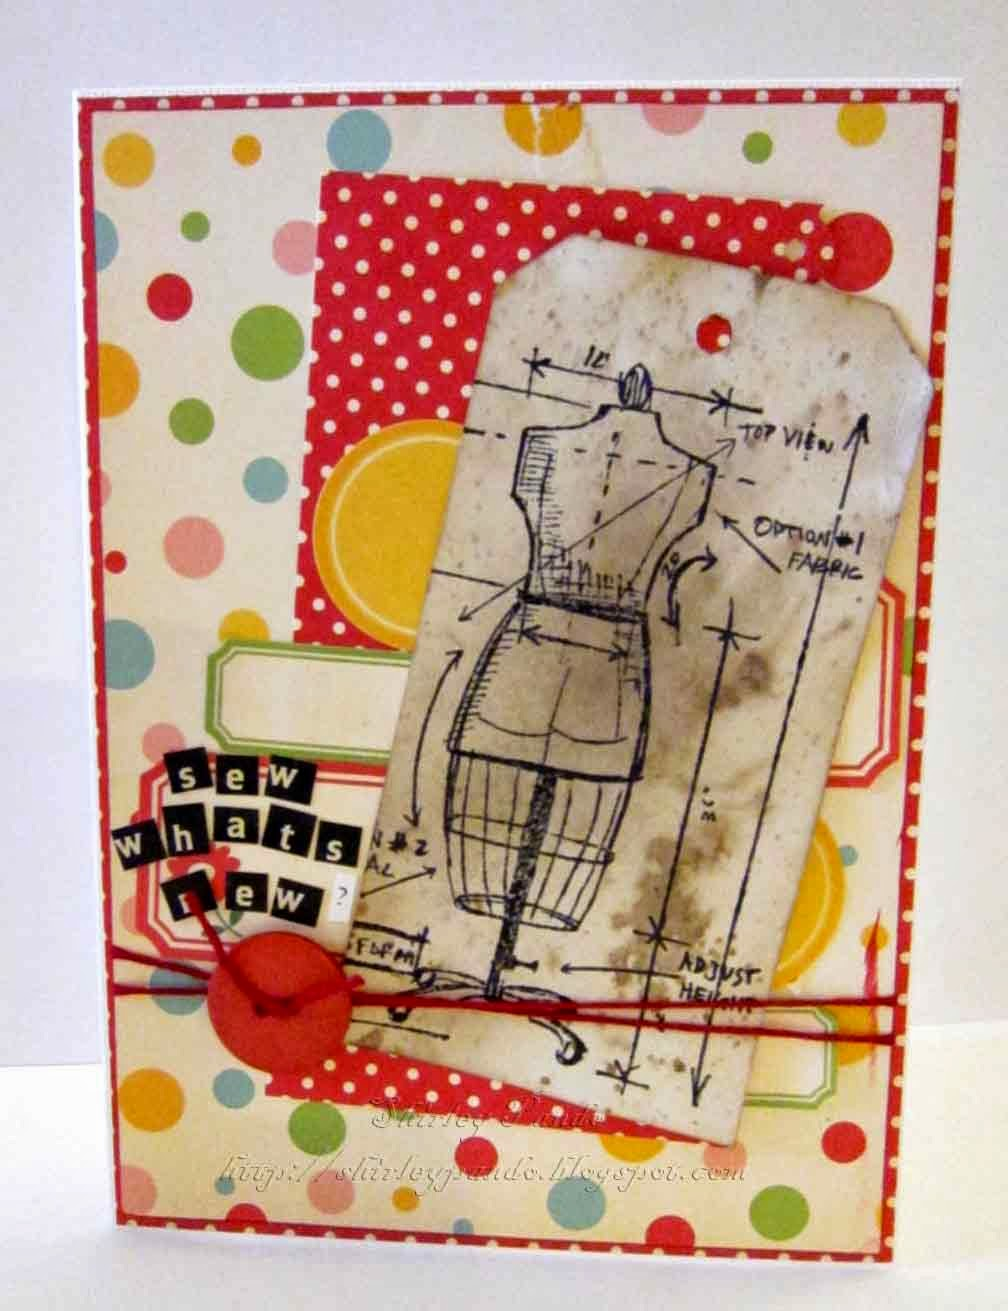 http://shirleypando.blogspot.com/2014/03/help-me-with-this-card.html